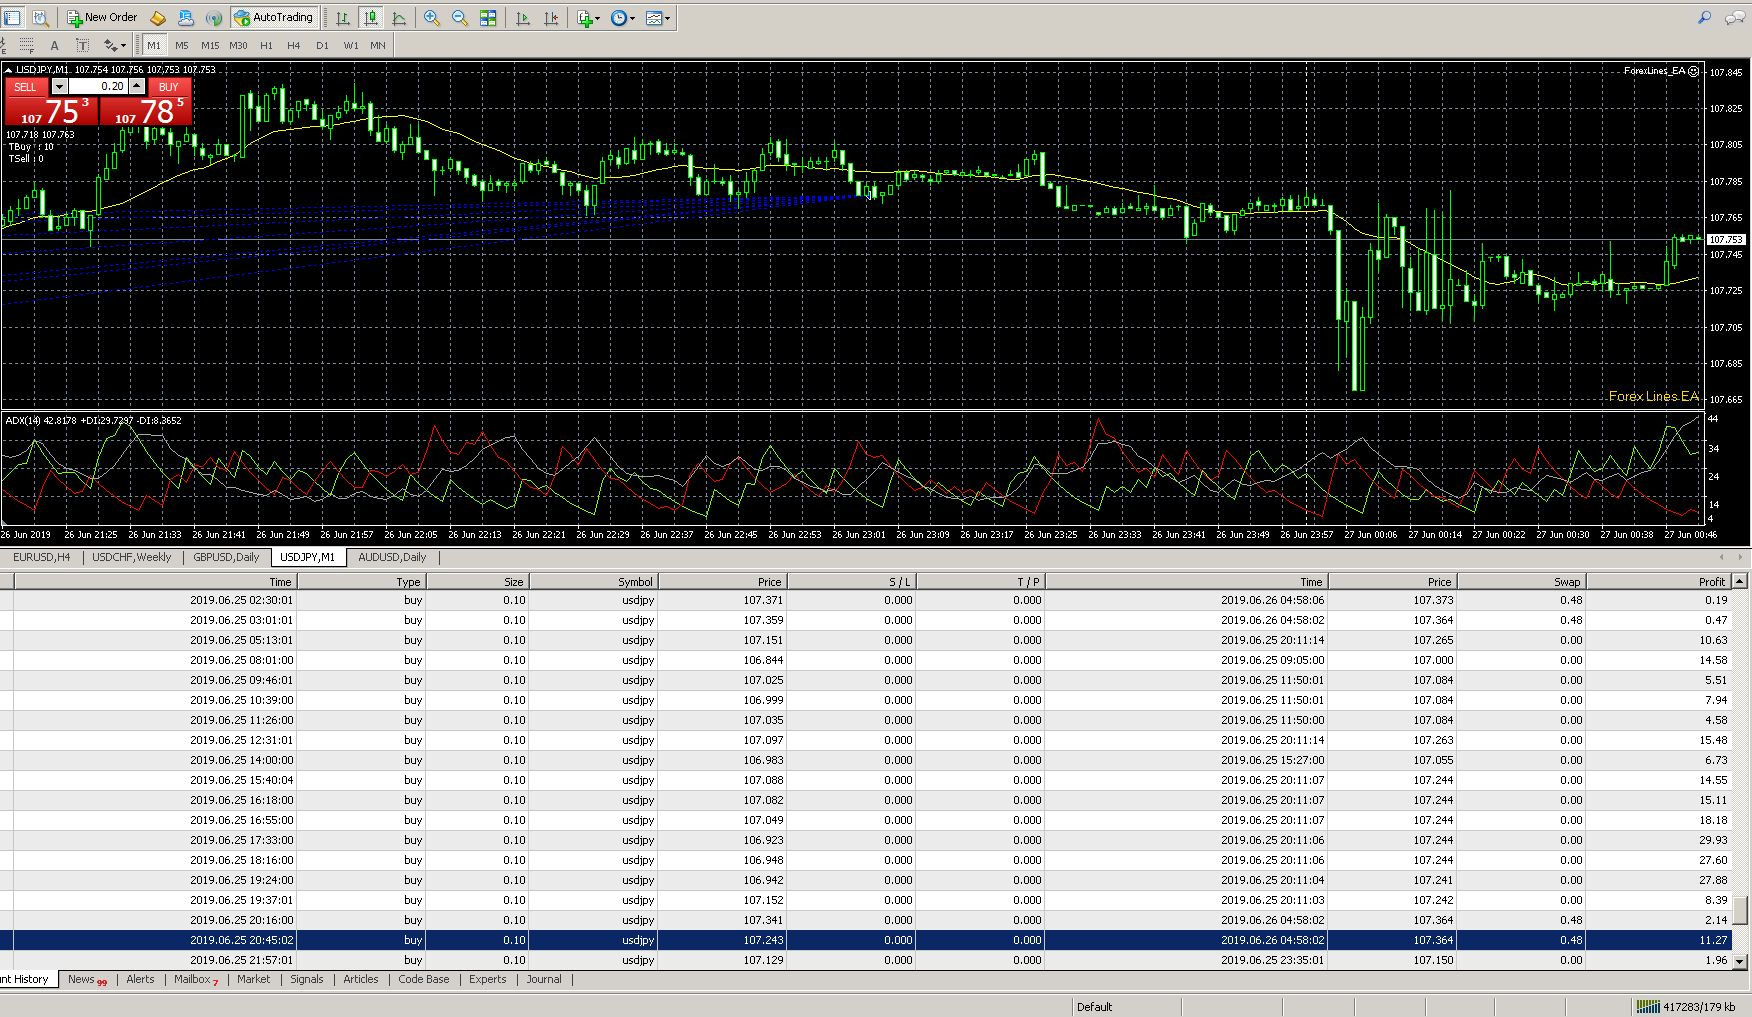 Live forex signals without registration